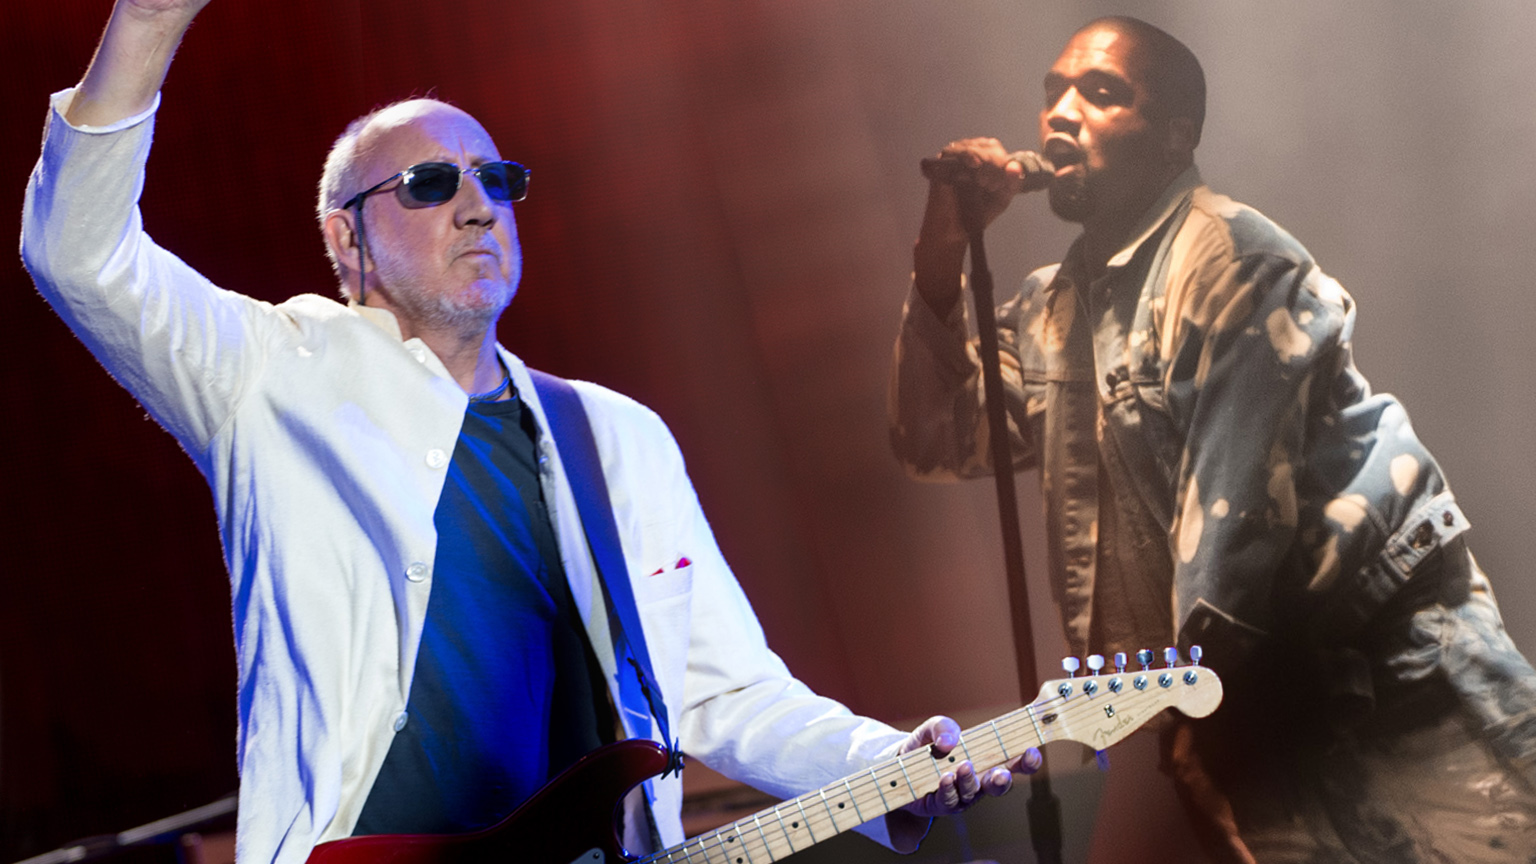 Pete Townshend rips Kanye over who is the biggest rock star in the world.